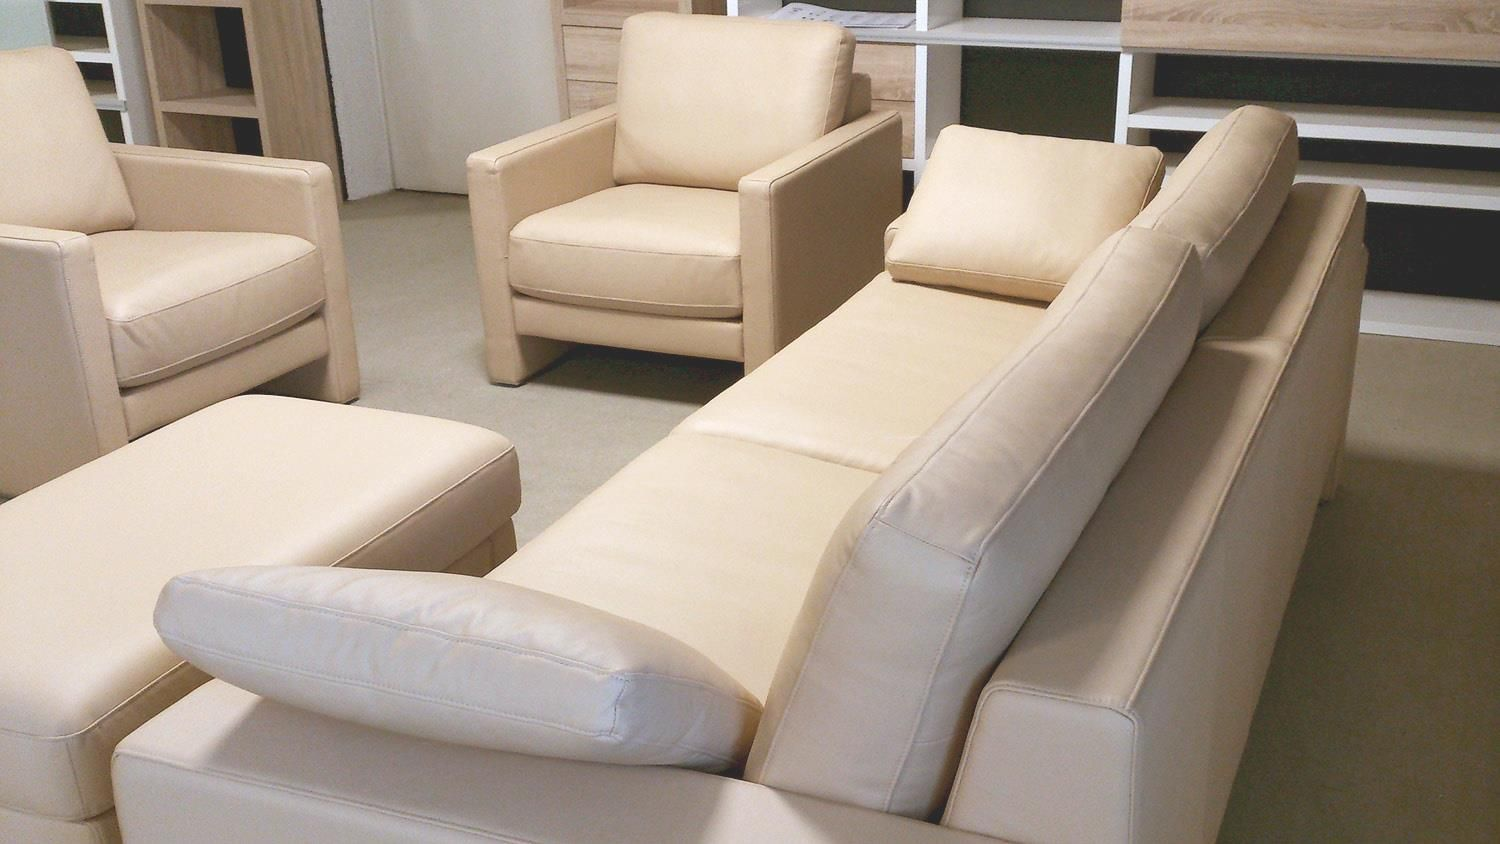 96 Reference Of Rolf Benz Ledercouch Gebraucht In 2020 Sofa Couch Sofa Decor